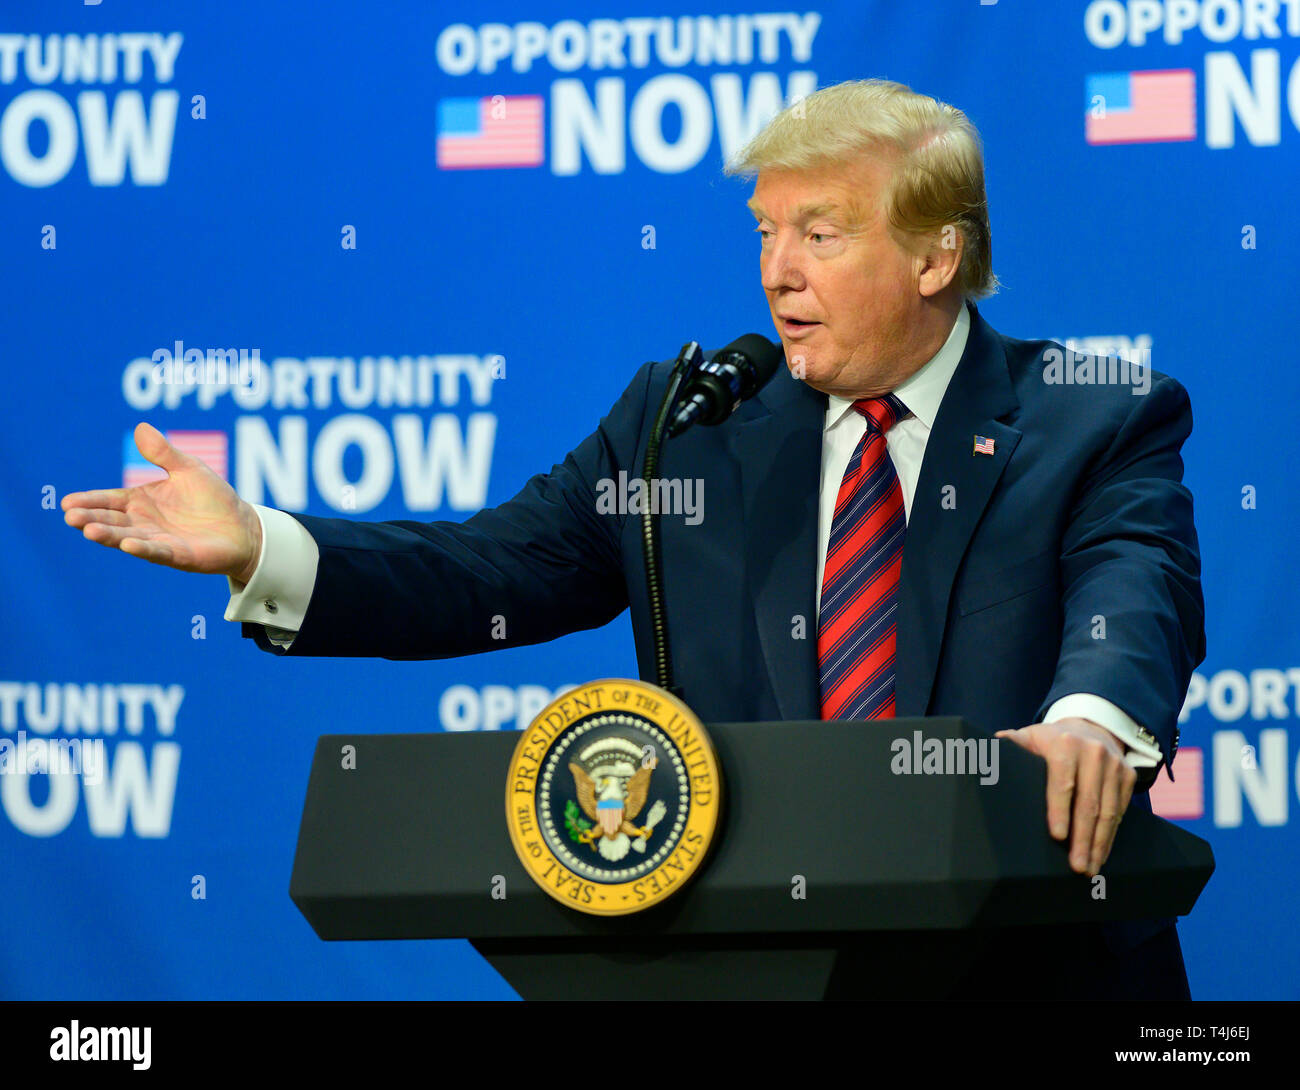 Washington, United States Of America. 17th Apr, 2019. United States President Donald J. Trump makes remarks at an Opportunity Zone conference with state, local, tribal, and community leaders in the South Court Auditorium of the White House in Washington, DC on April 17, 2019. Credit: Ron Sachs/CNP | usage worldwide Credit: dpa/Alamy Live News Stock Photo